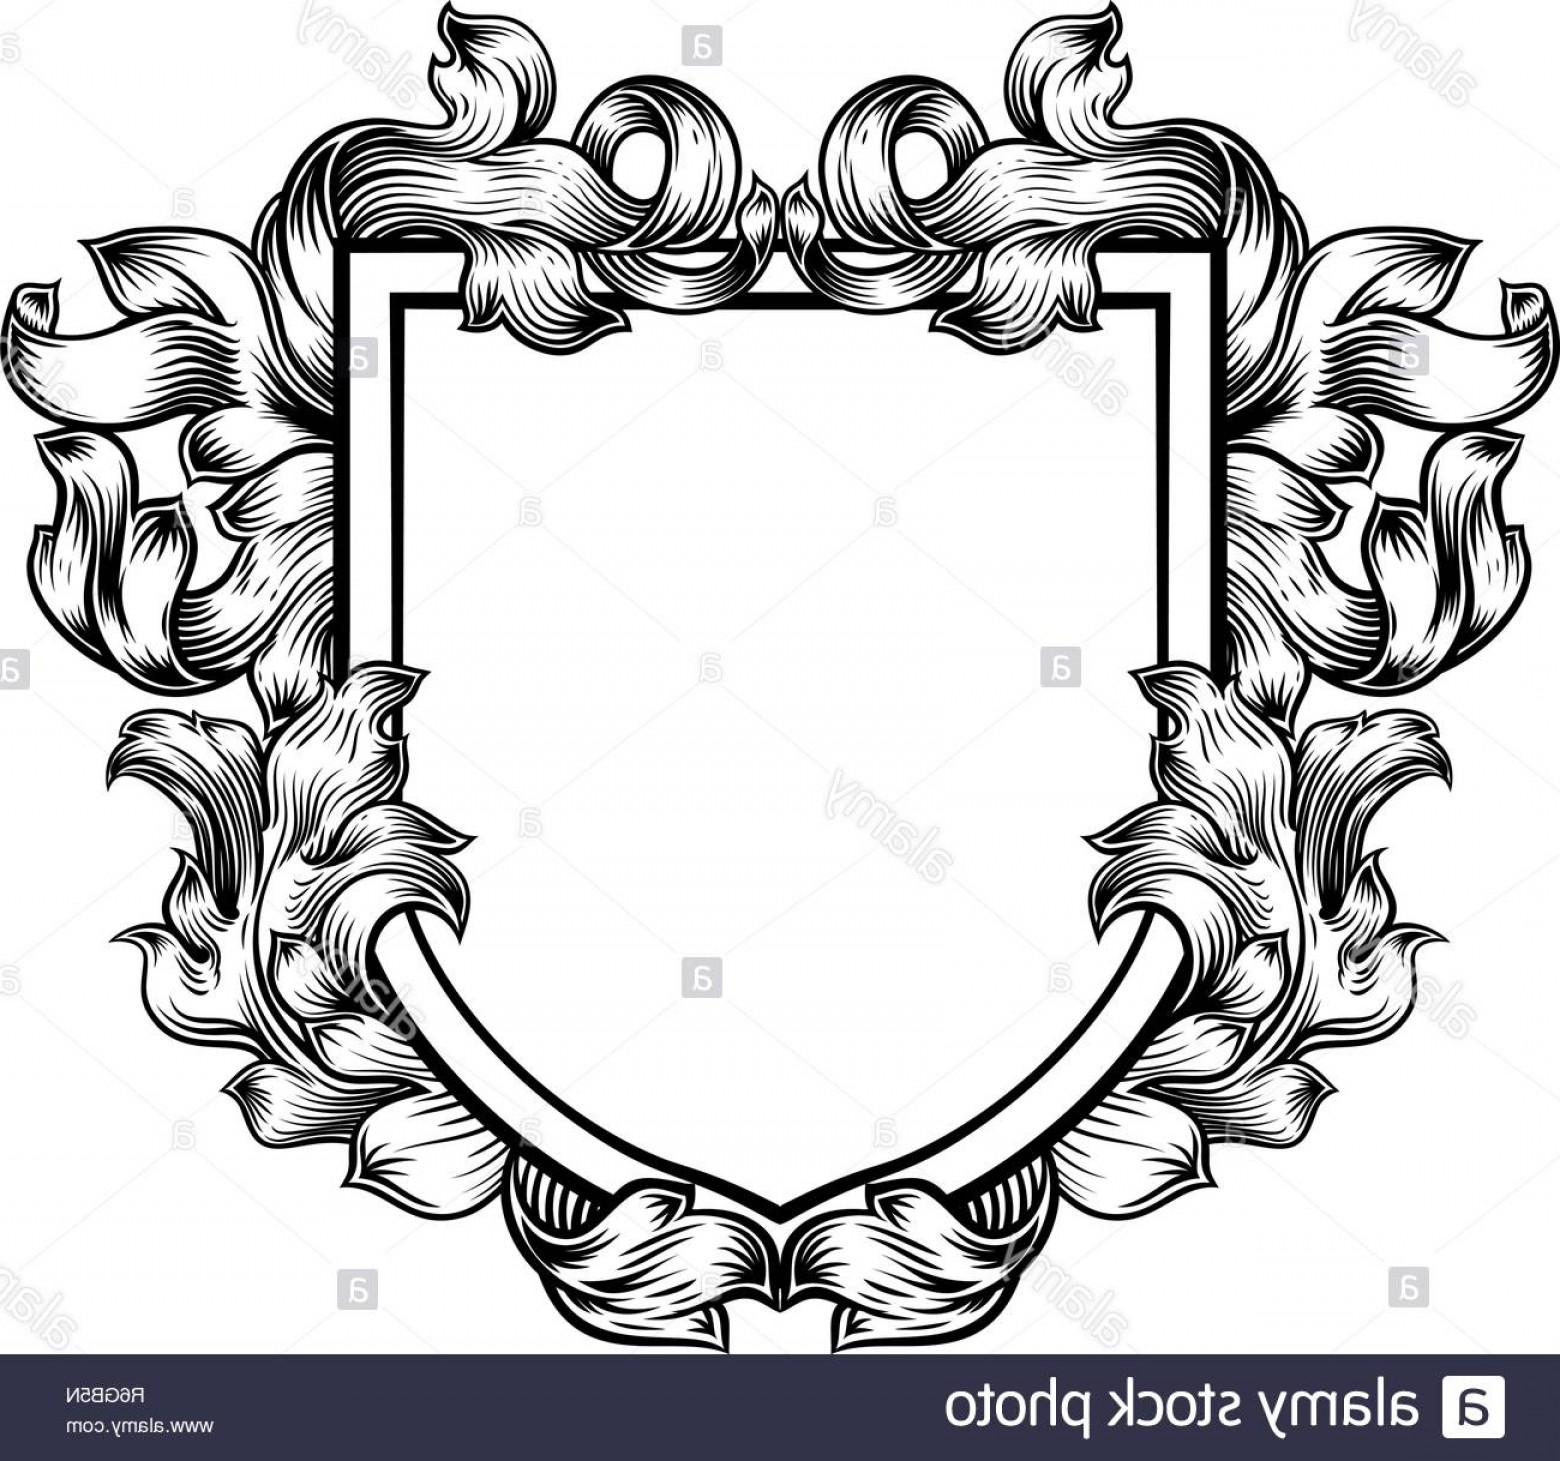 Crest And Coat Of Arms Vector Silhouette: Coat Of Arms Crest Family Knight Heraldic Shield Image